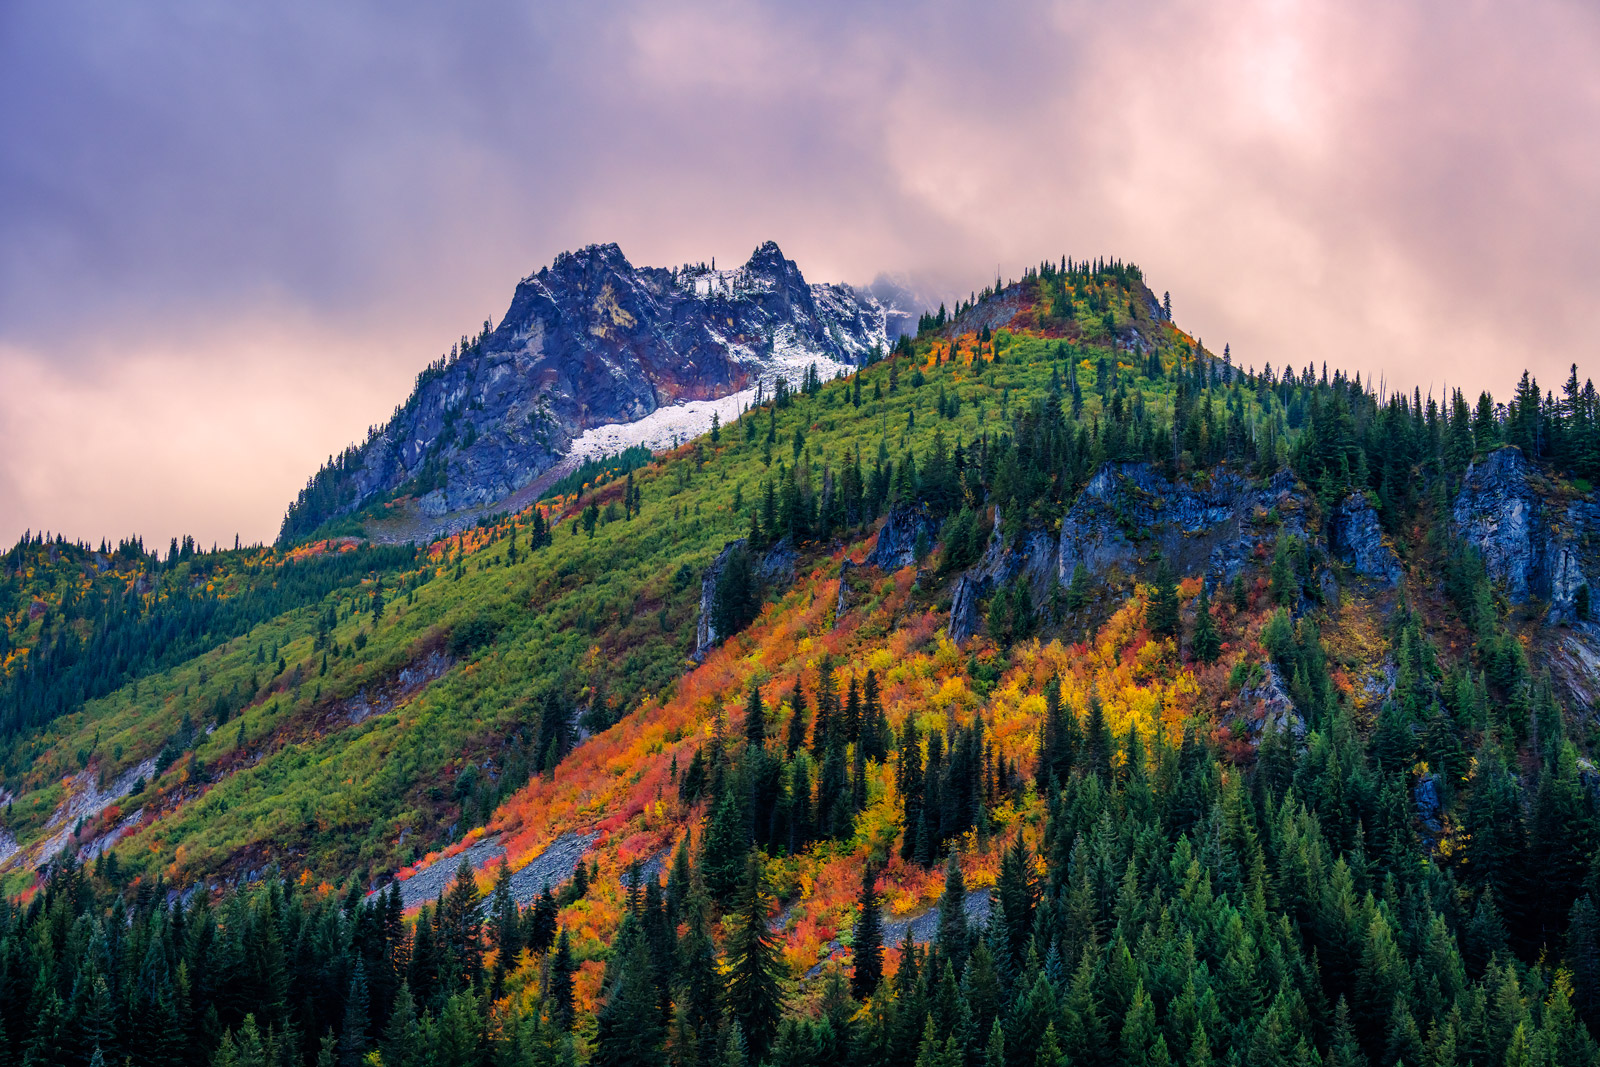 A Limited Edition, Fine Art photograph of Stevens Canyon with fall color in Washington. Available as a Fine Art print, Metal...